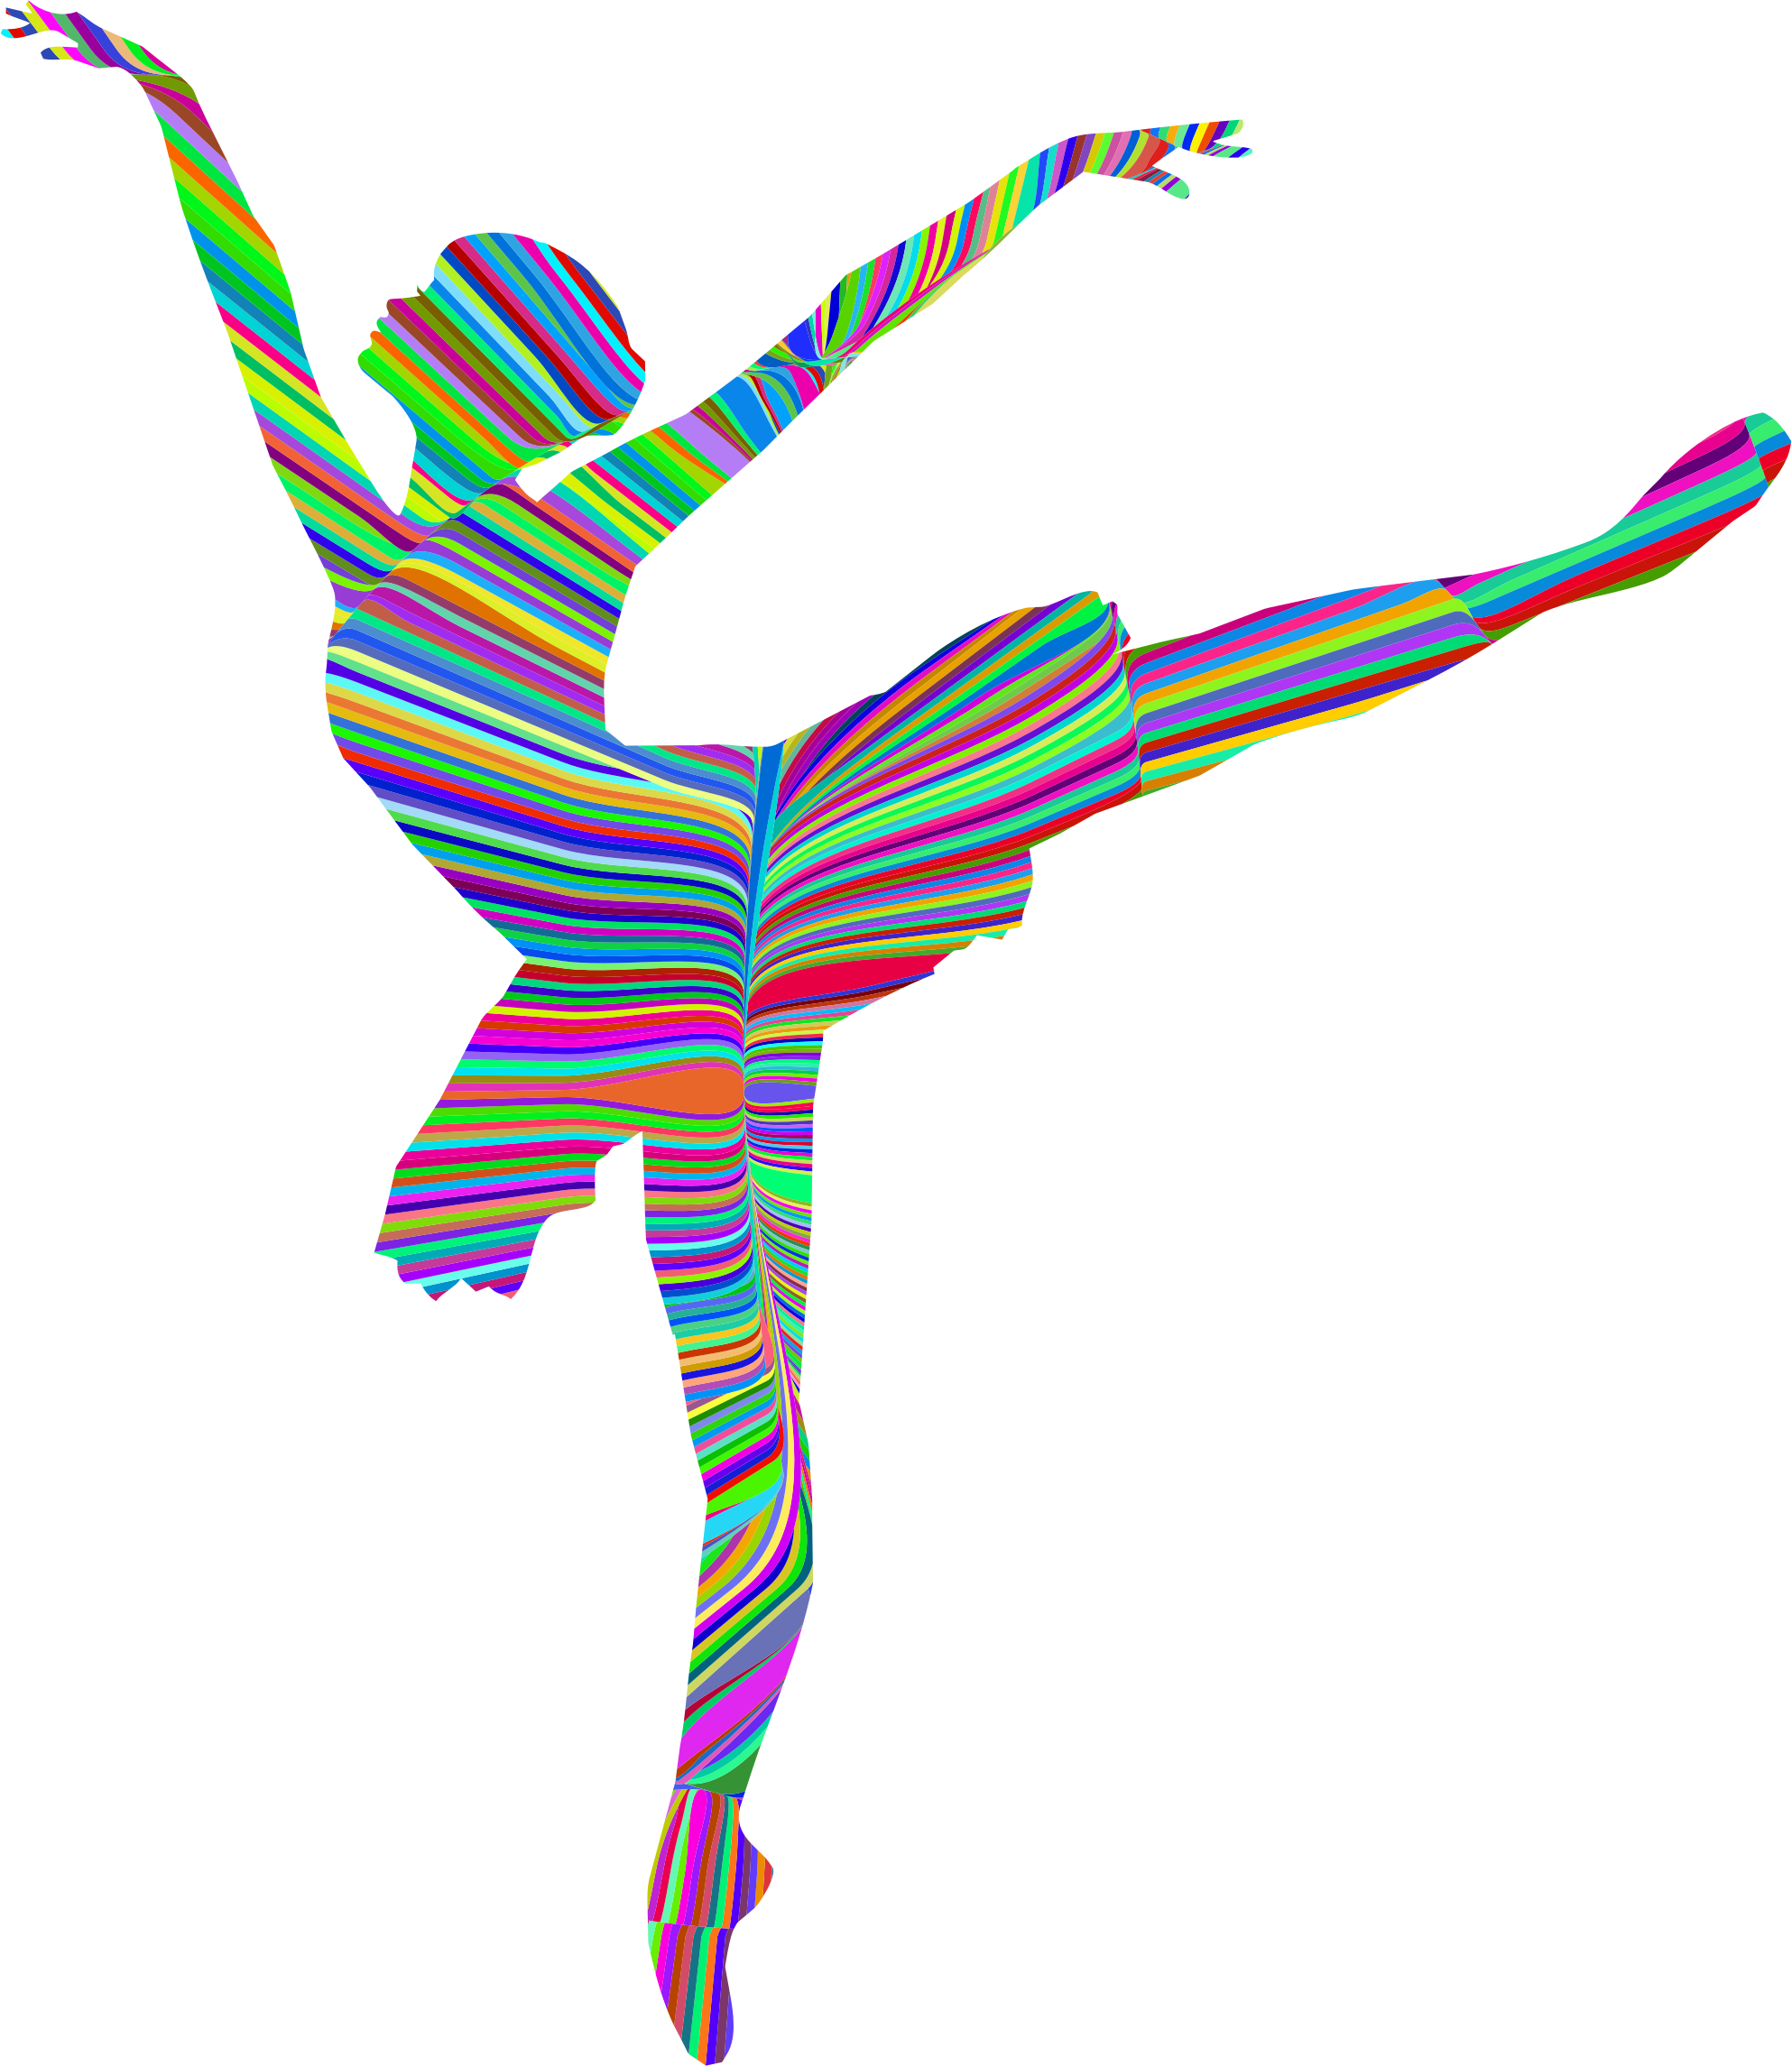 Psychedelic Waves Graceful Ballerina Silhouette by GDJ